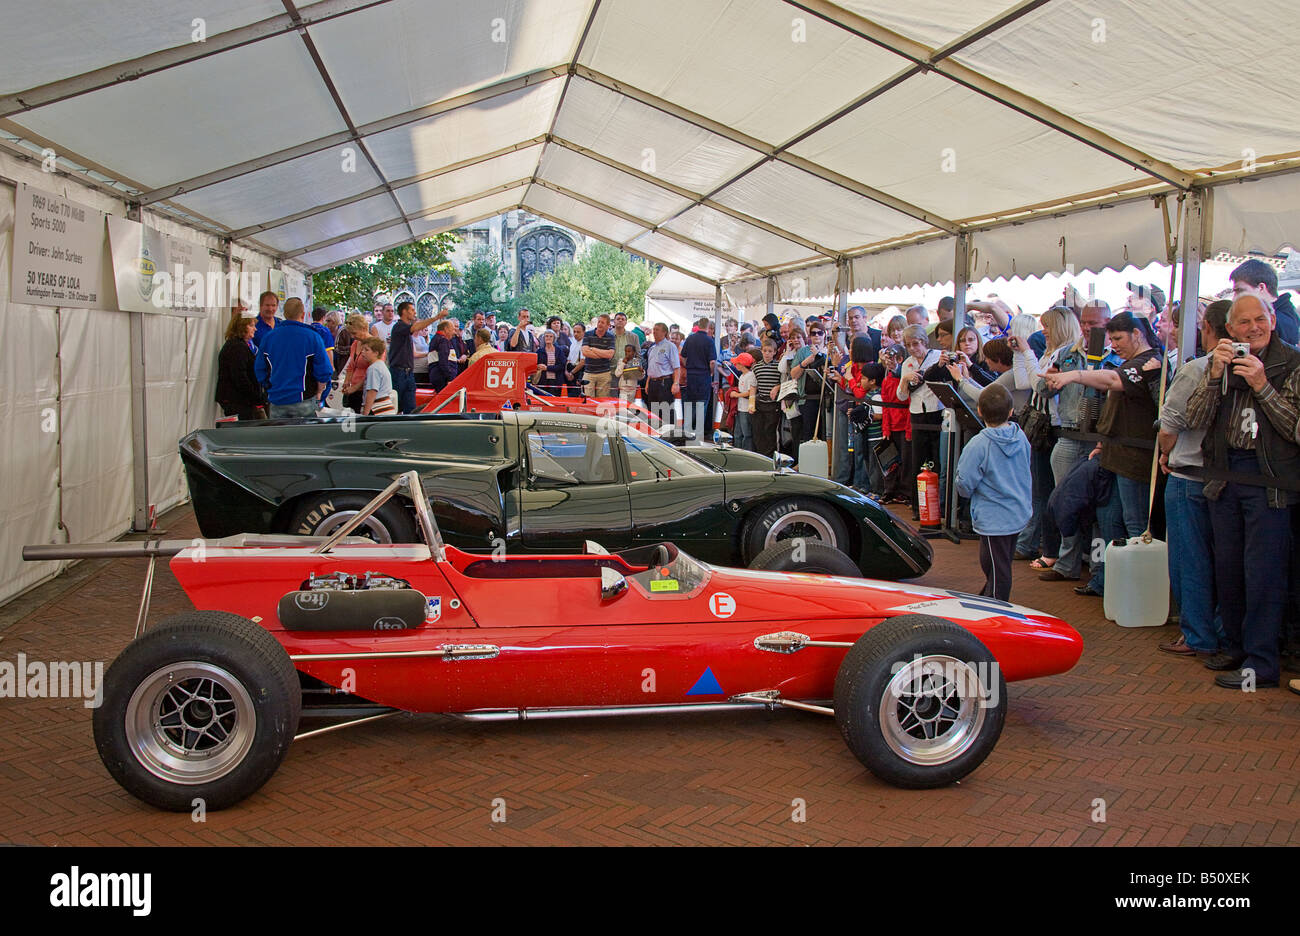 Lola T100 Formula 2, 1967, used by J.Surtees racing team in 1970, on show to the public during Lola,s 50th Anniversary. Stock Photo